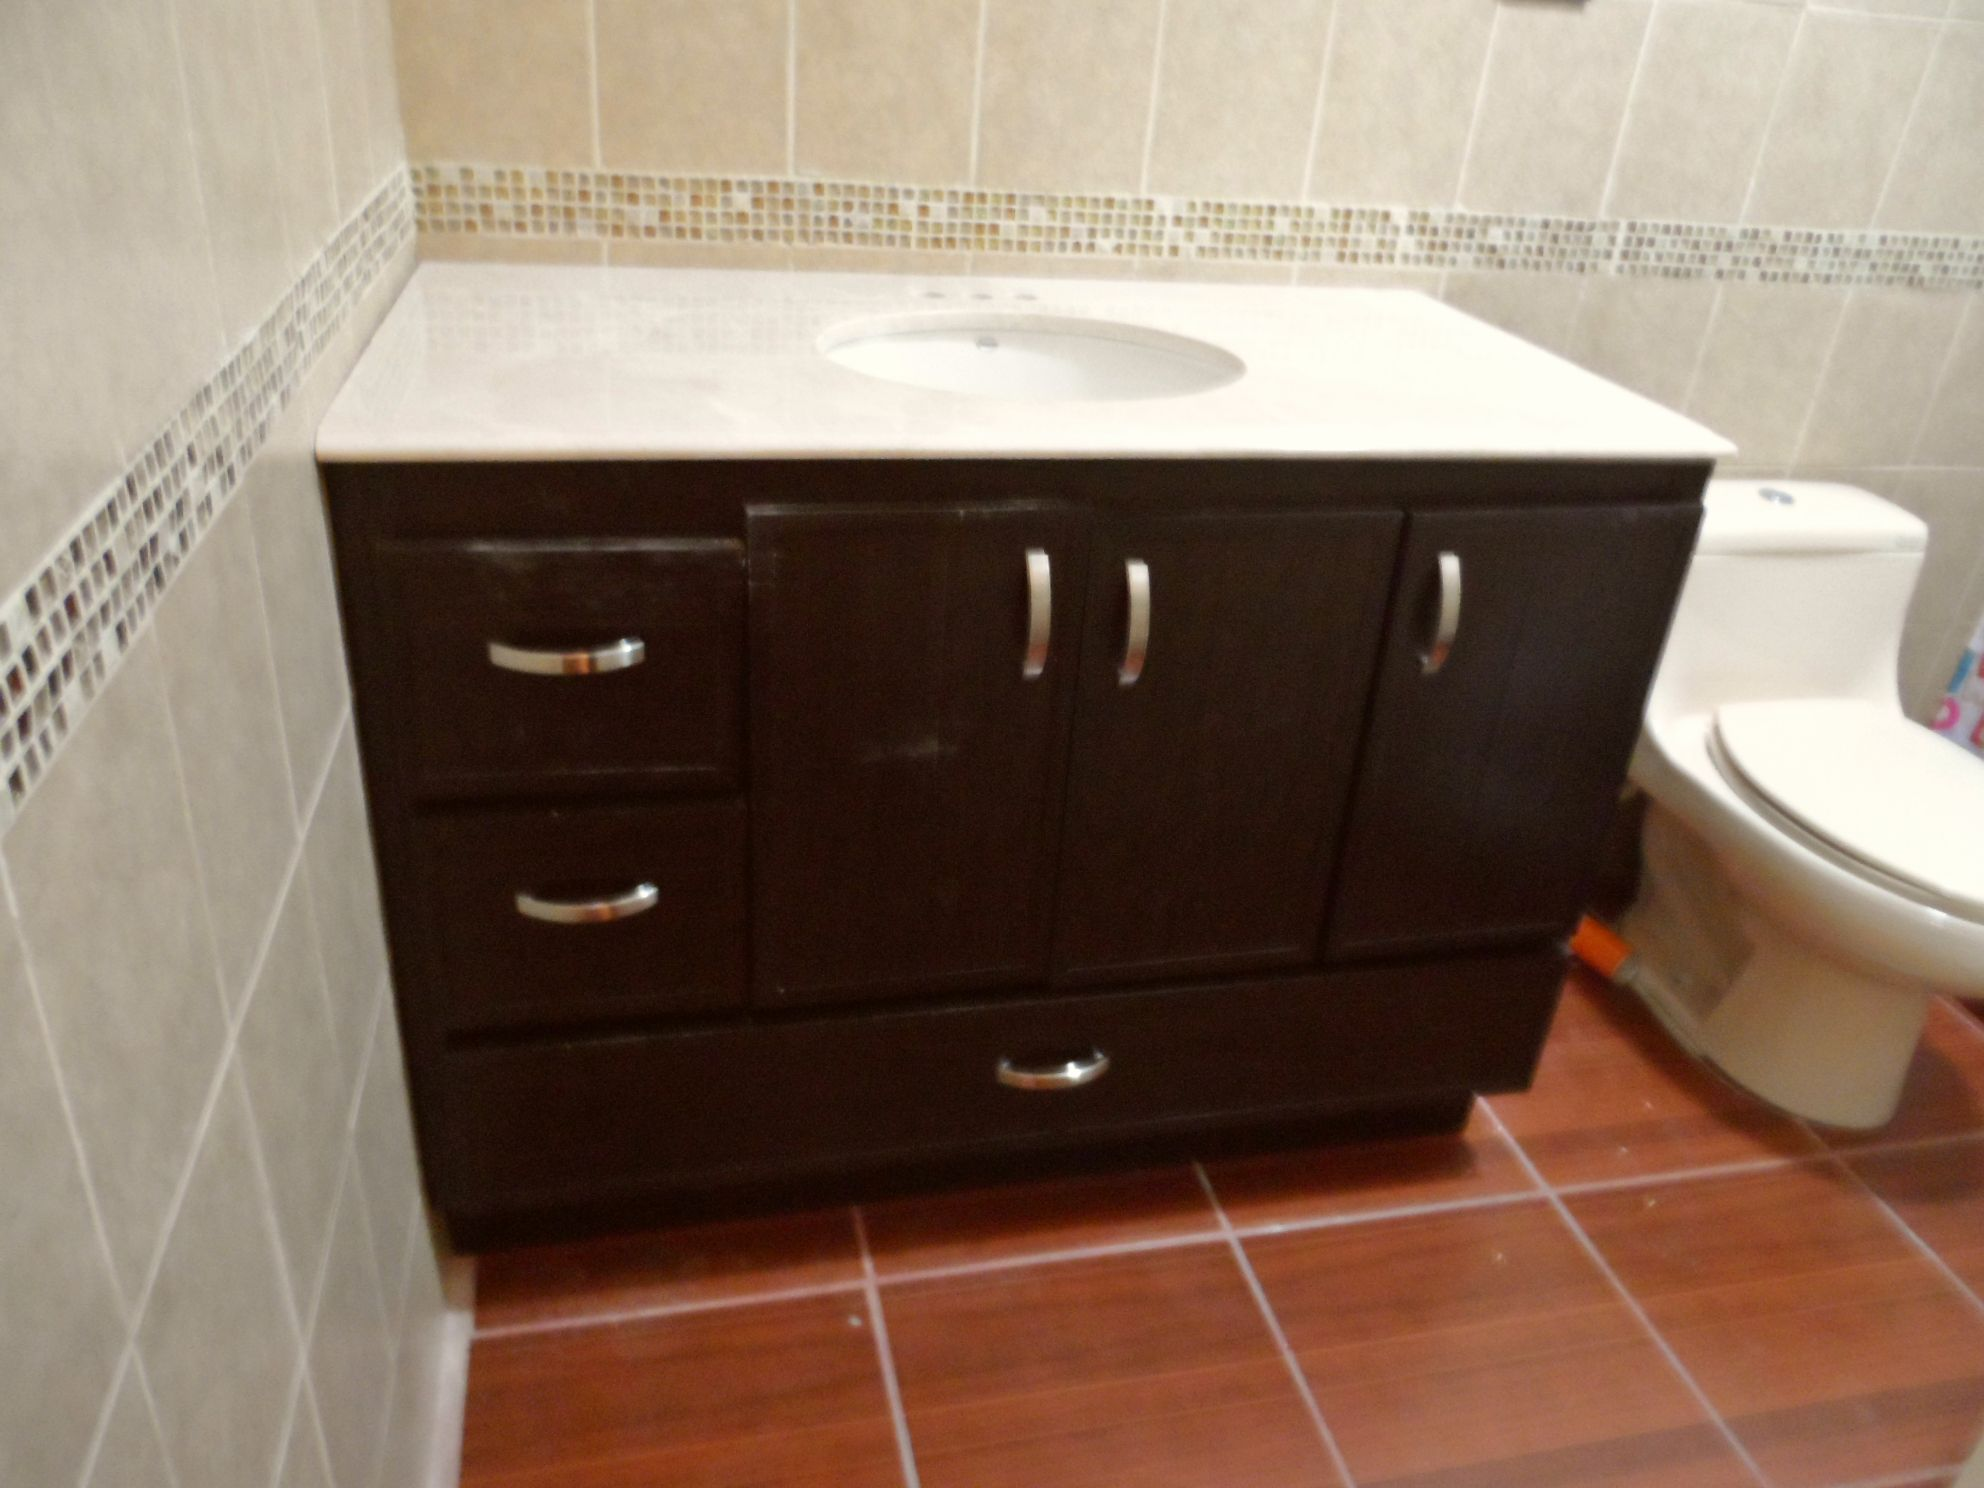 RIGID PLASTIC BATHROOM CABINETS